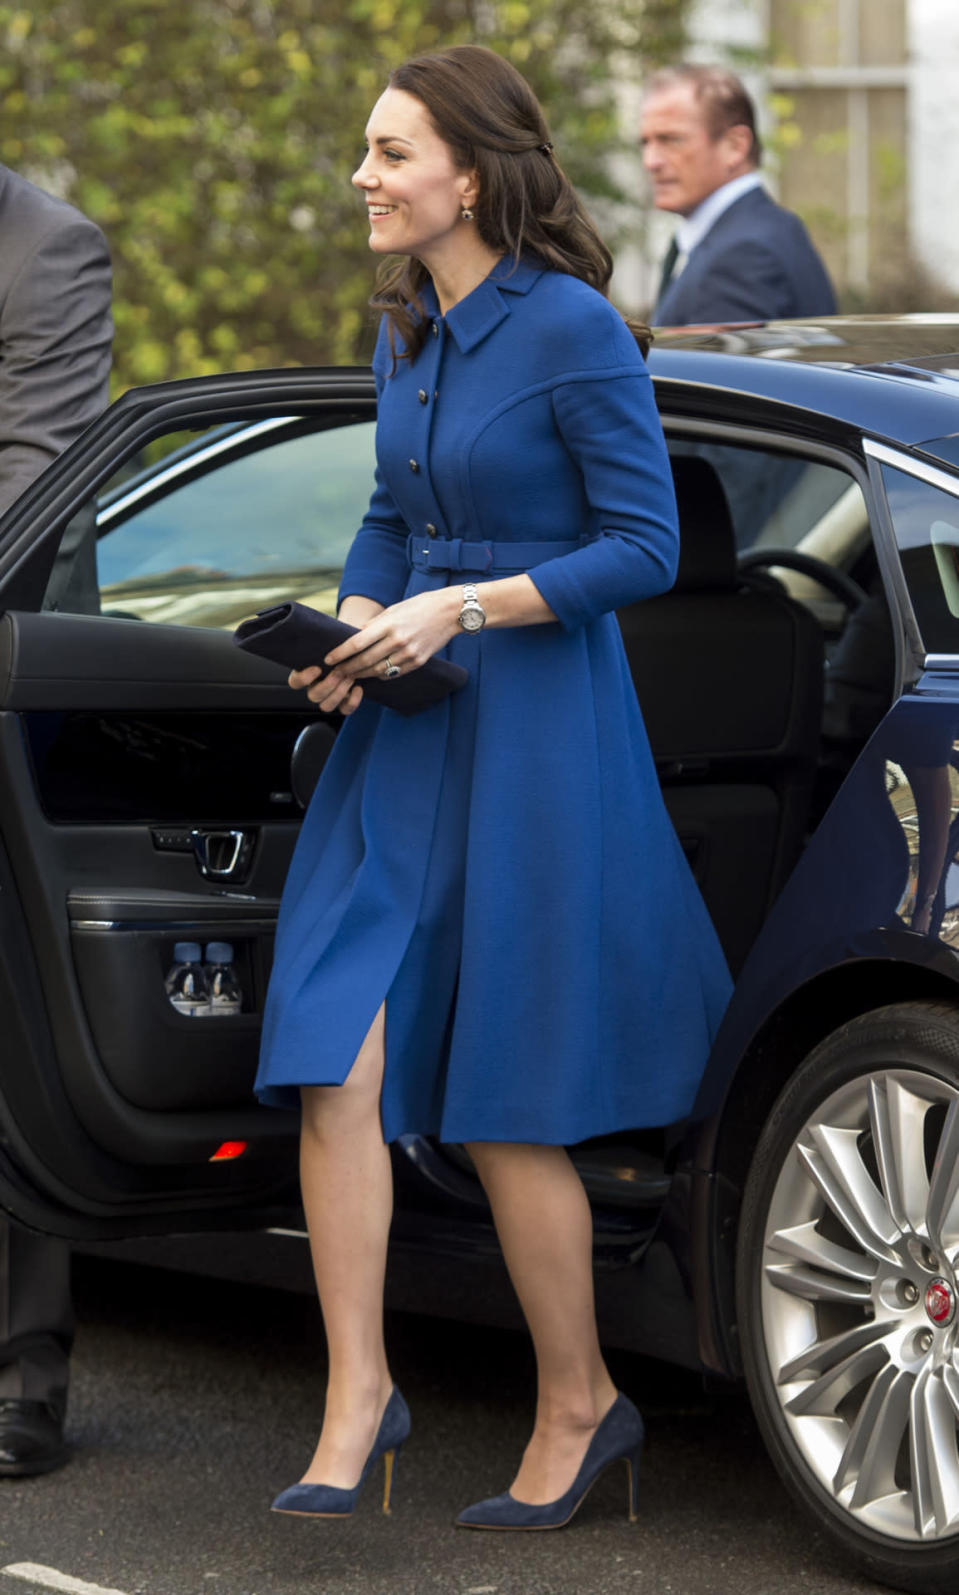 """<p>For her <a href=""""https://uk.style.yahoo.com/duchess-of-cambridge-brings-back-90s-hair-trend-on-first-work-outing-of-2017-120744931.html"""" data-ylk=""""slk:first official appearance of the year;outcm:mb_qualified_link;_E:mb_qualified_link;ct:story;"""" class=""""link rapid-noclick-resp yahoo-link"""">first official appearance of the year</a>, the Duchess donned a royal blue coat by London luxe label Eponine. Kate finished the look with her trusty Rupert Sanderson blue pumps and twisted back locks of her hair with the ultimate 90s hair accessory: the butterfly clip. </p><p><i>[Photo: Getty]</i></p>"""